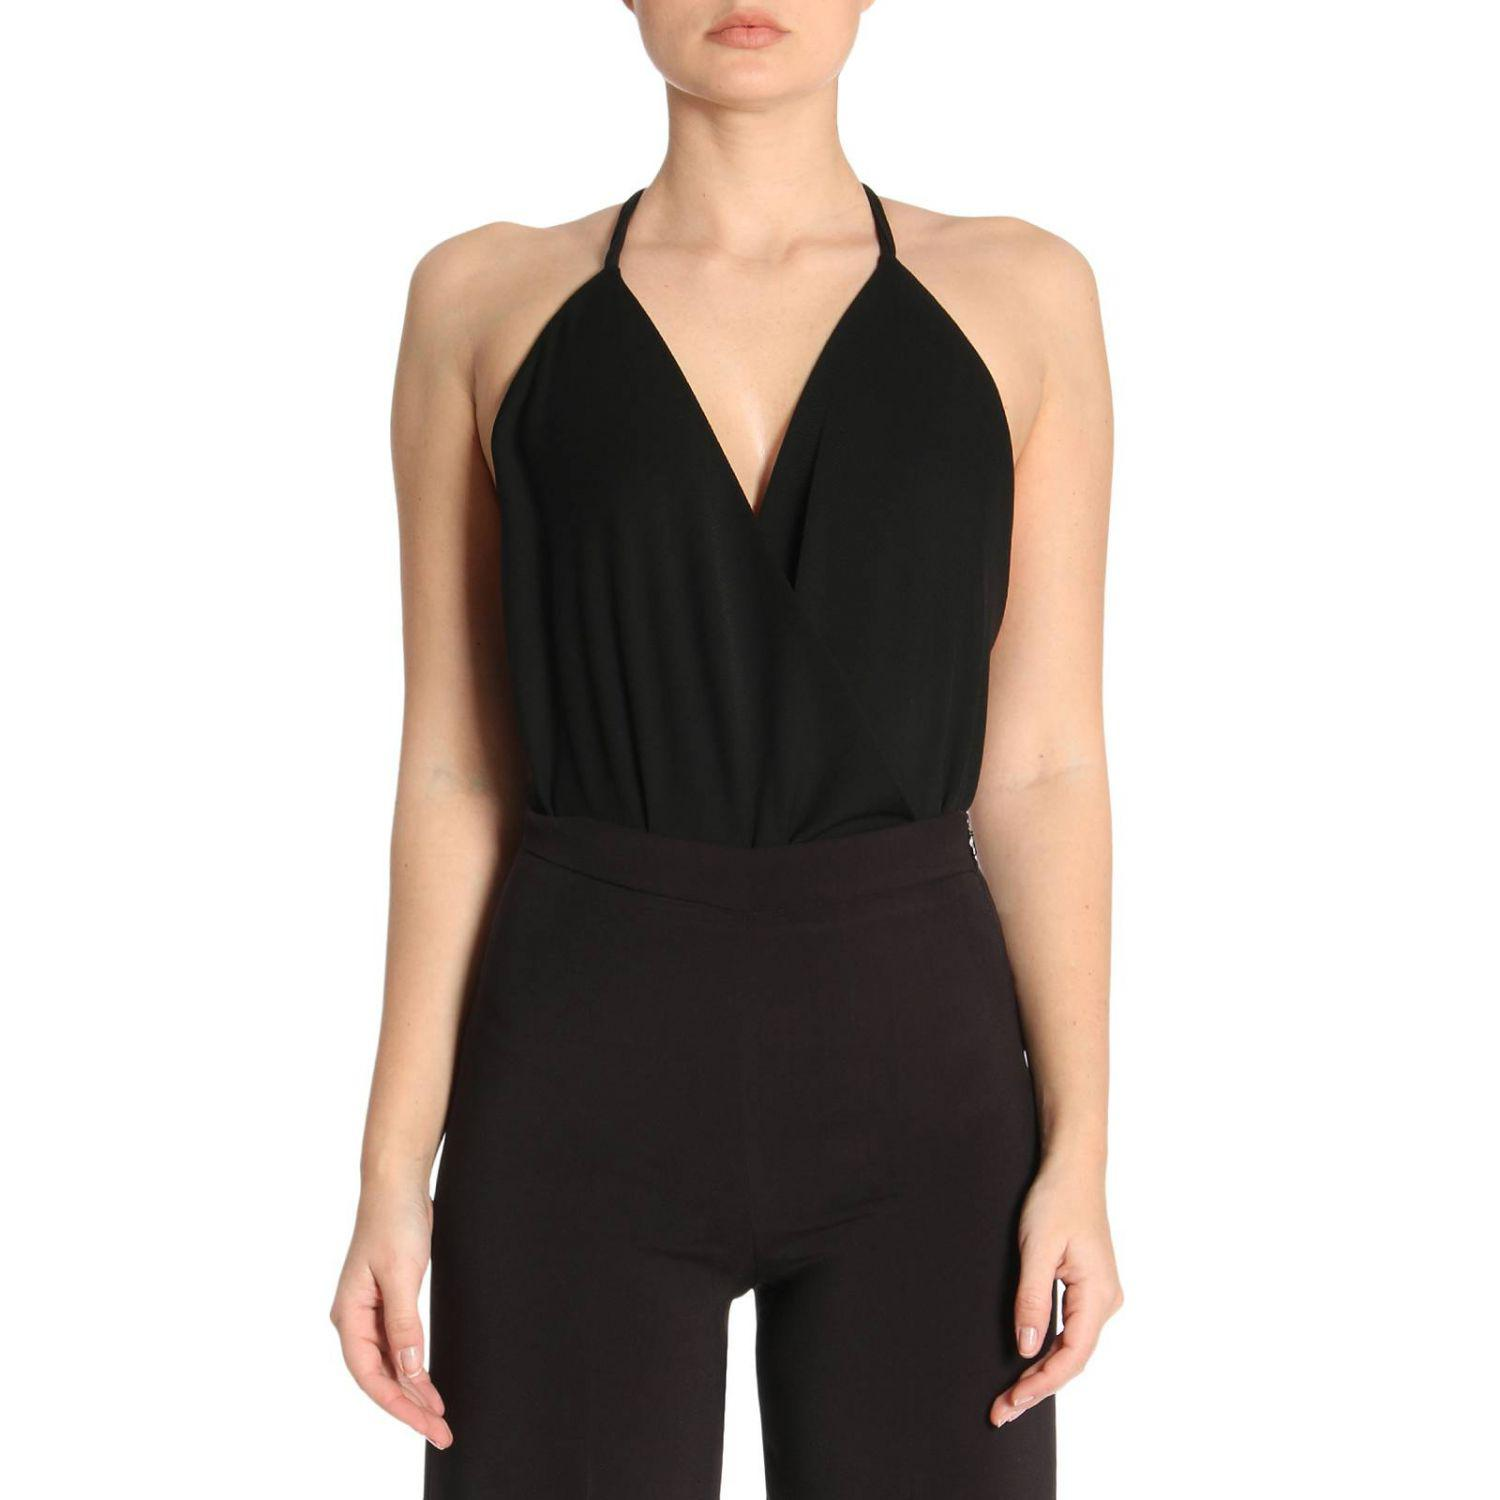 Cheapest For Sale Manchester Great Sale Online Black body Patrizia Pepe LRQwyyEHO